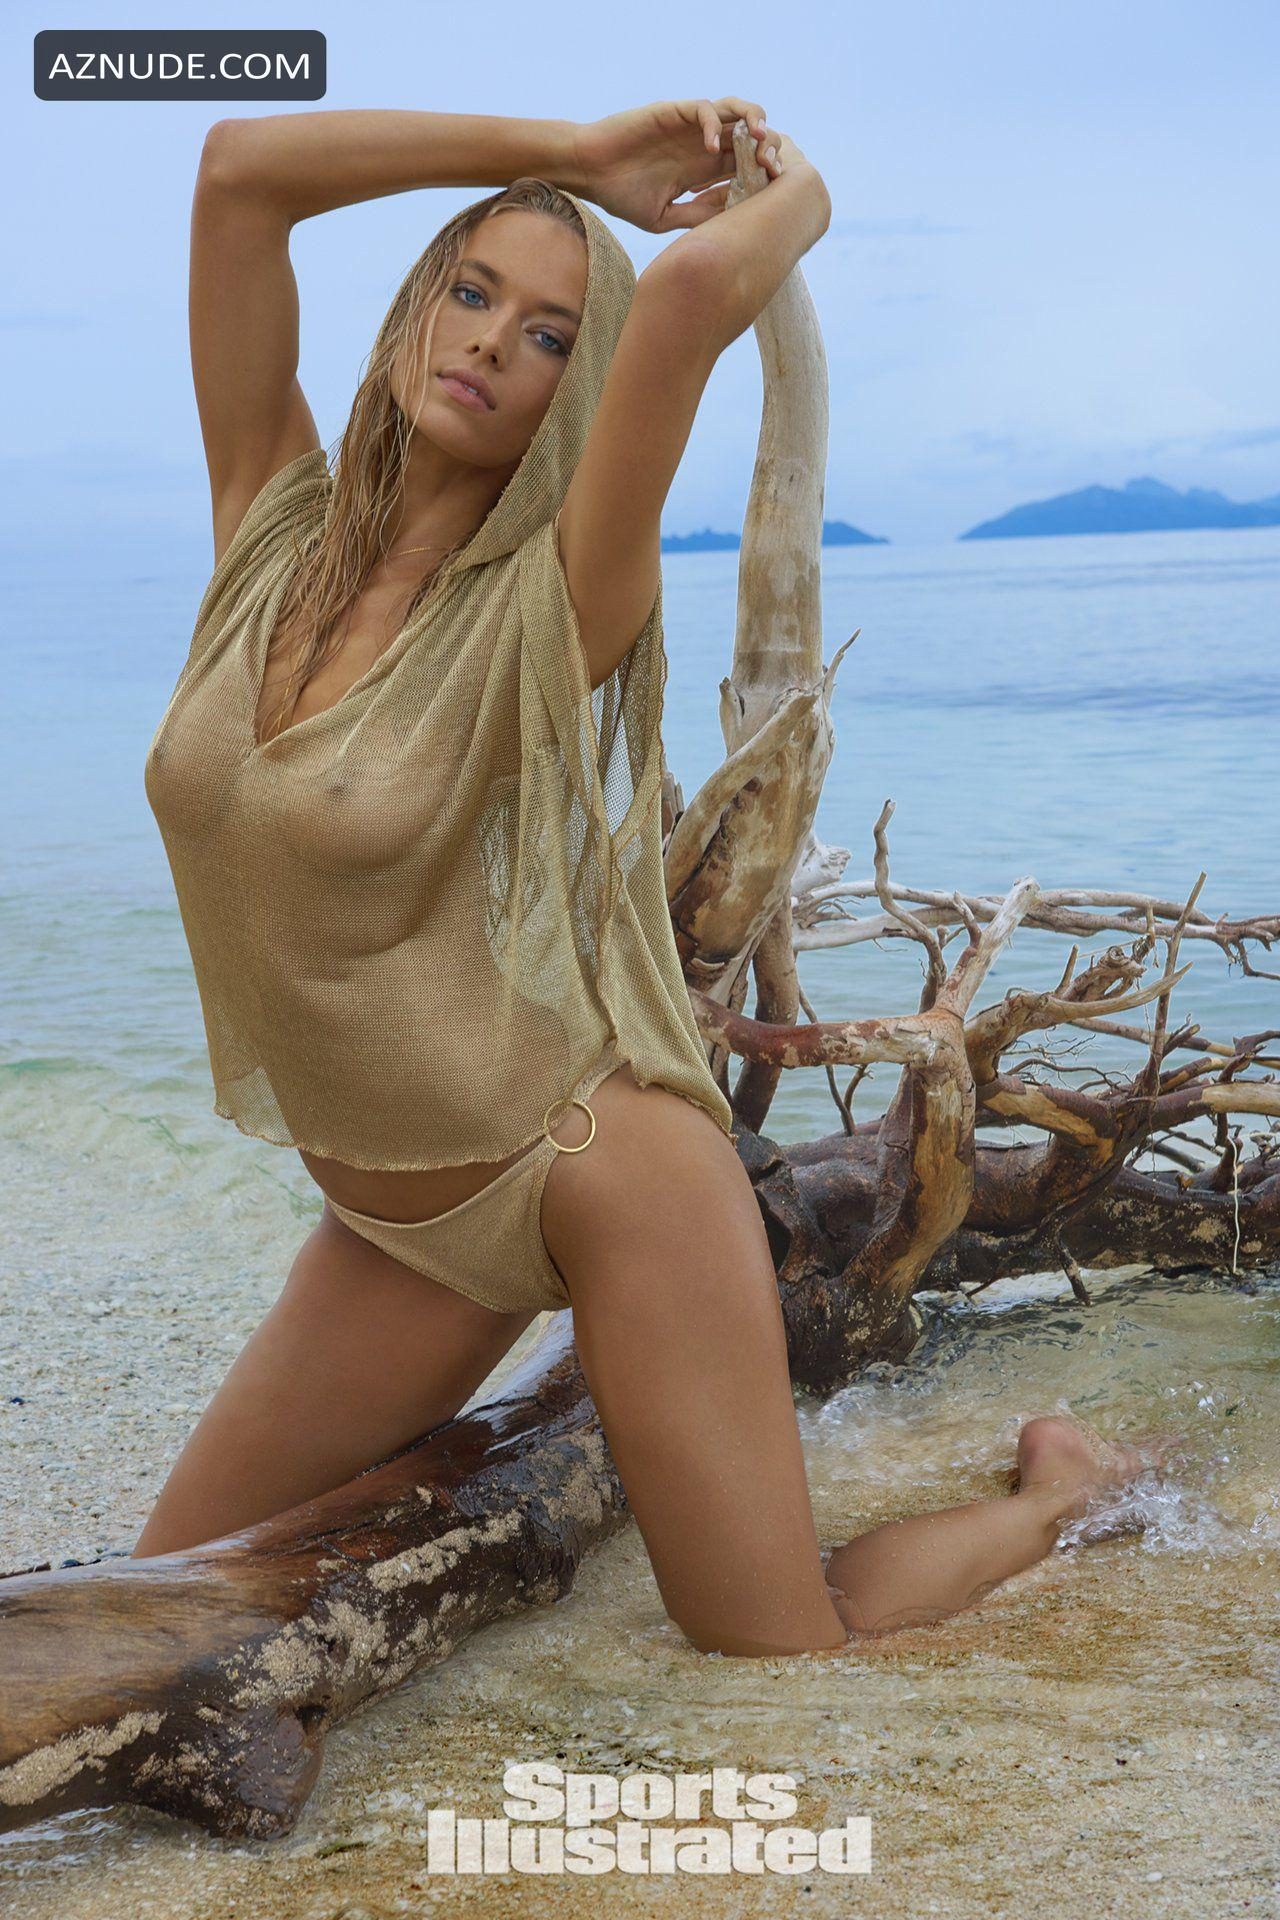 Hot Sports Illustrated Nude Swimsuit HD